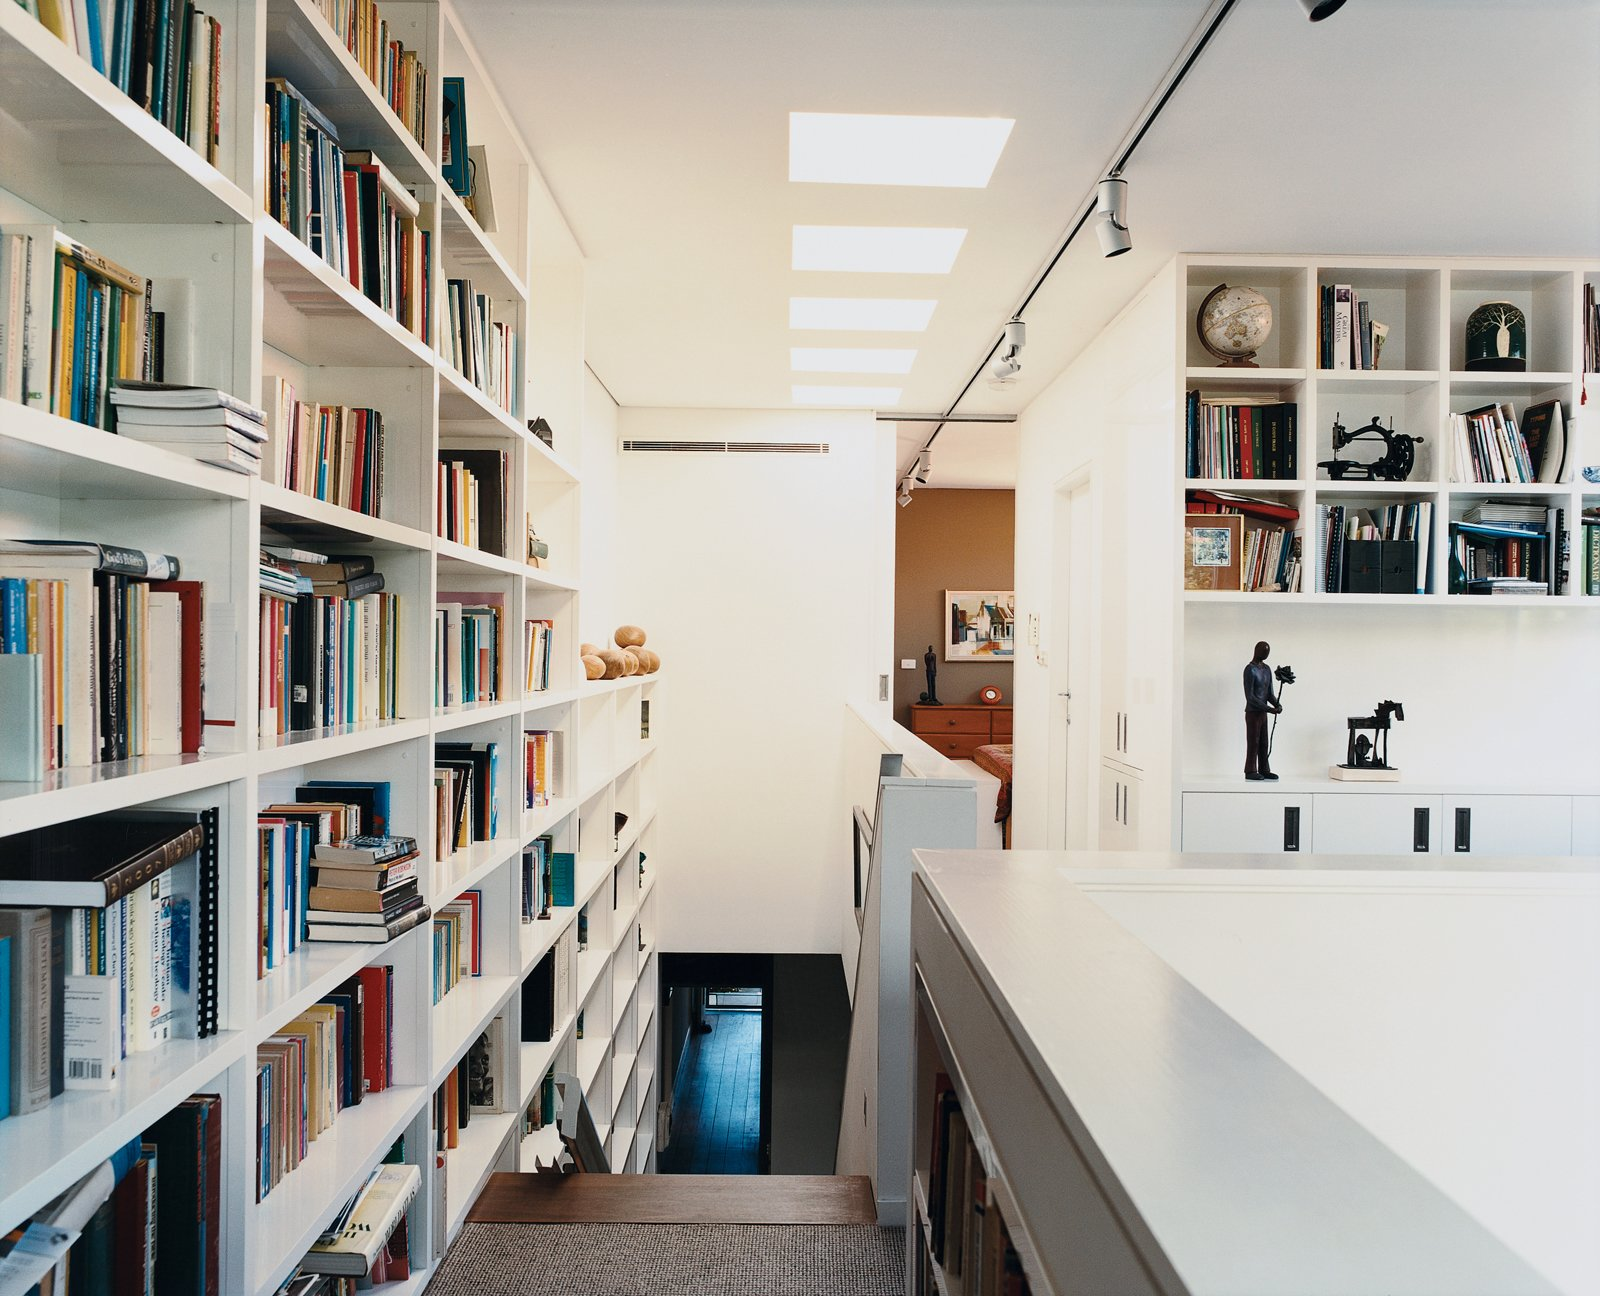 A wall of books travels the height of the stairs leading to Ann Wansbrough's office, which rests comfortably on the top floor despite her limited mobility. Tagged: Storage Room and Shelves Storage Type.  13+ Clever Bookcase Solutions by Erika Heet from The First Wave